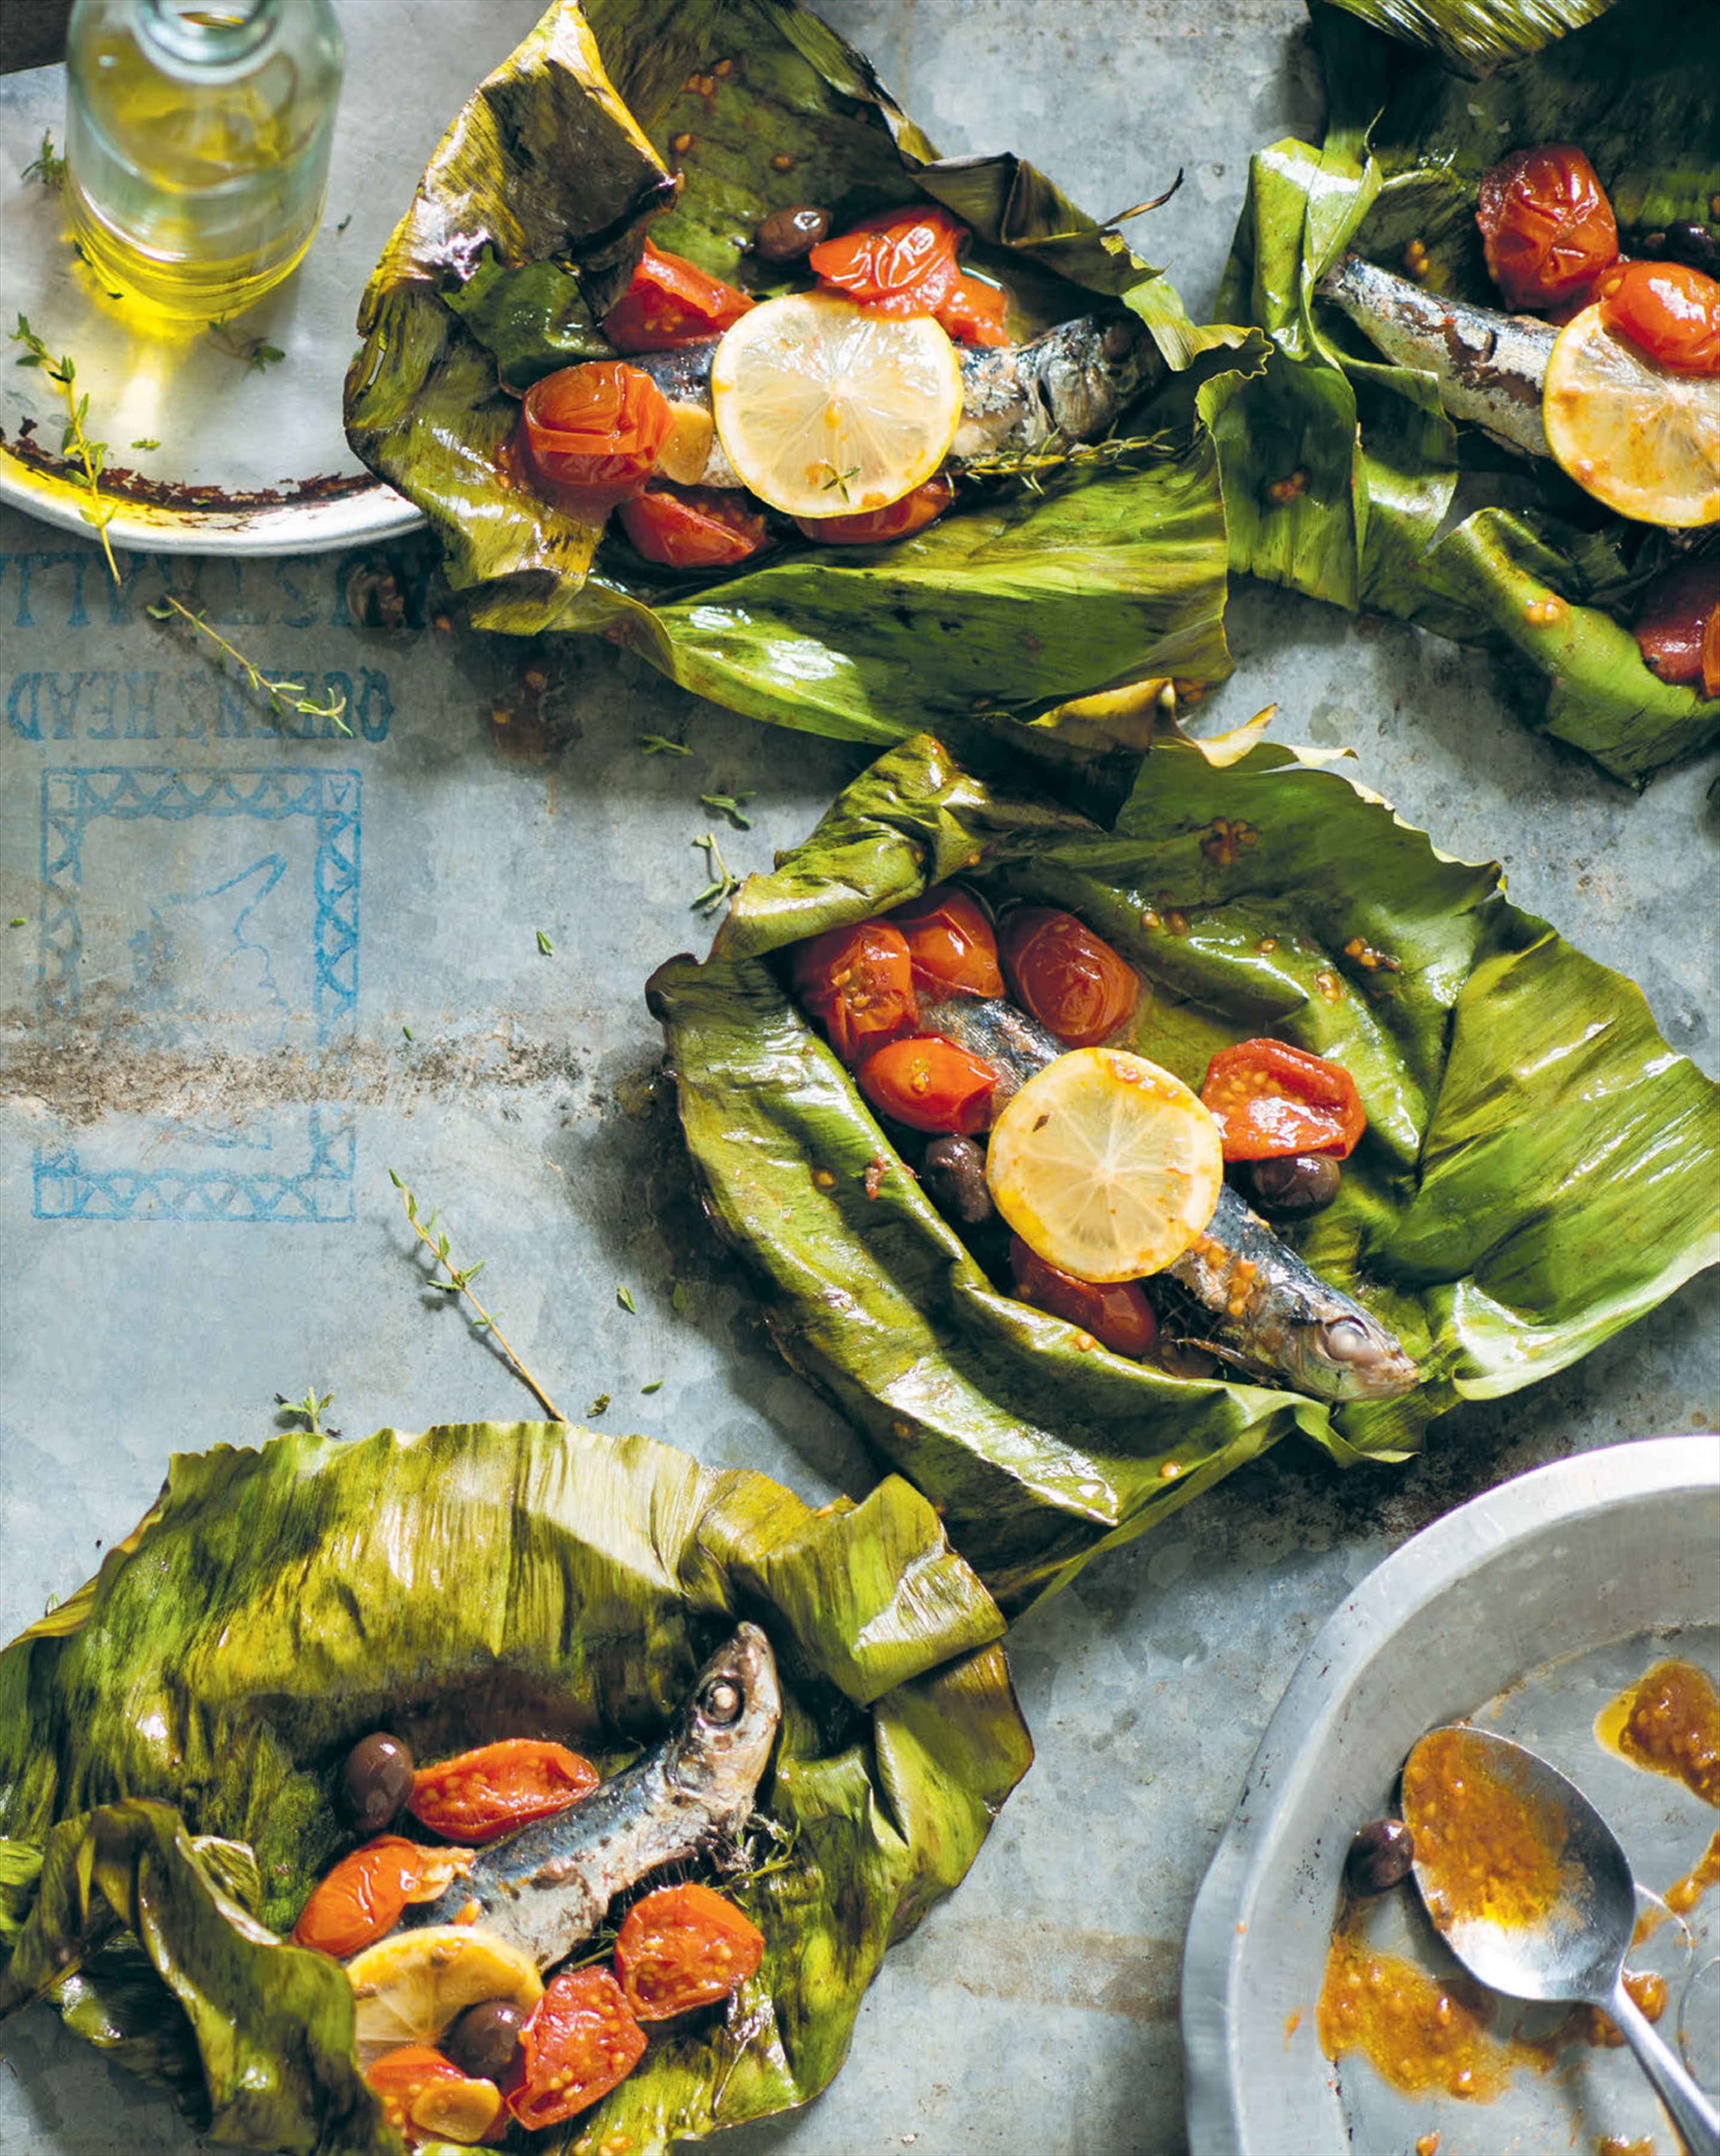 Sardines roasted in banana leaves with olives & cherry tomatoes